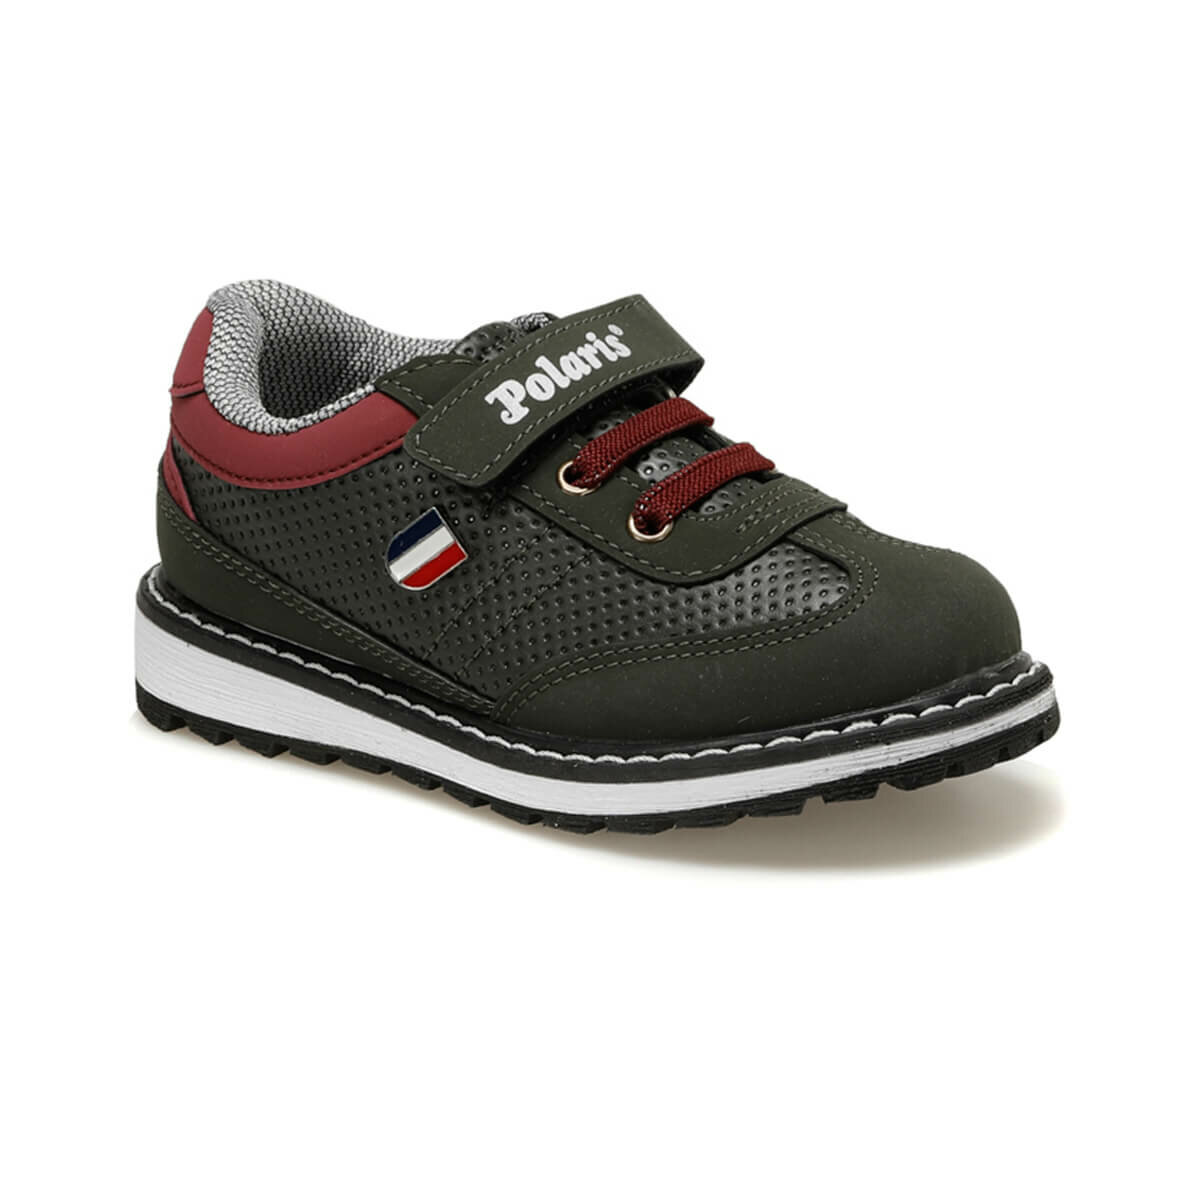 FLO 92.507772.P Khaki Male Child Shoes Polaris